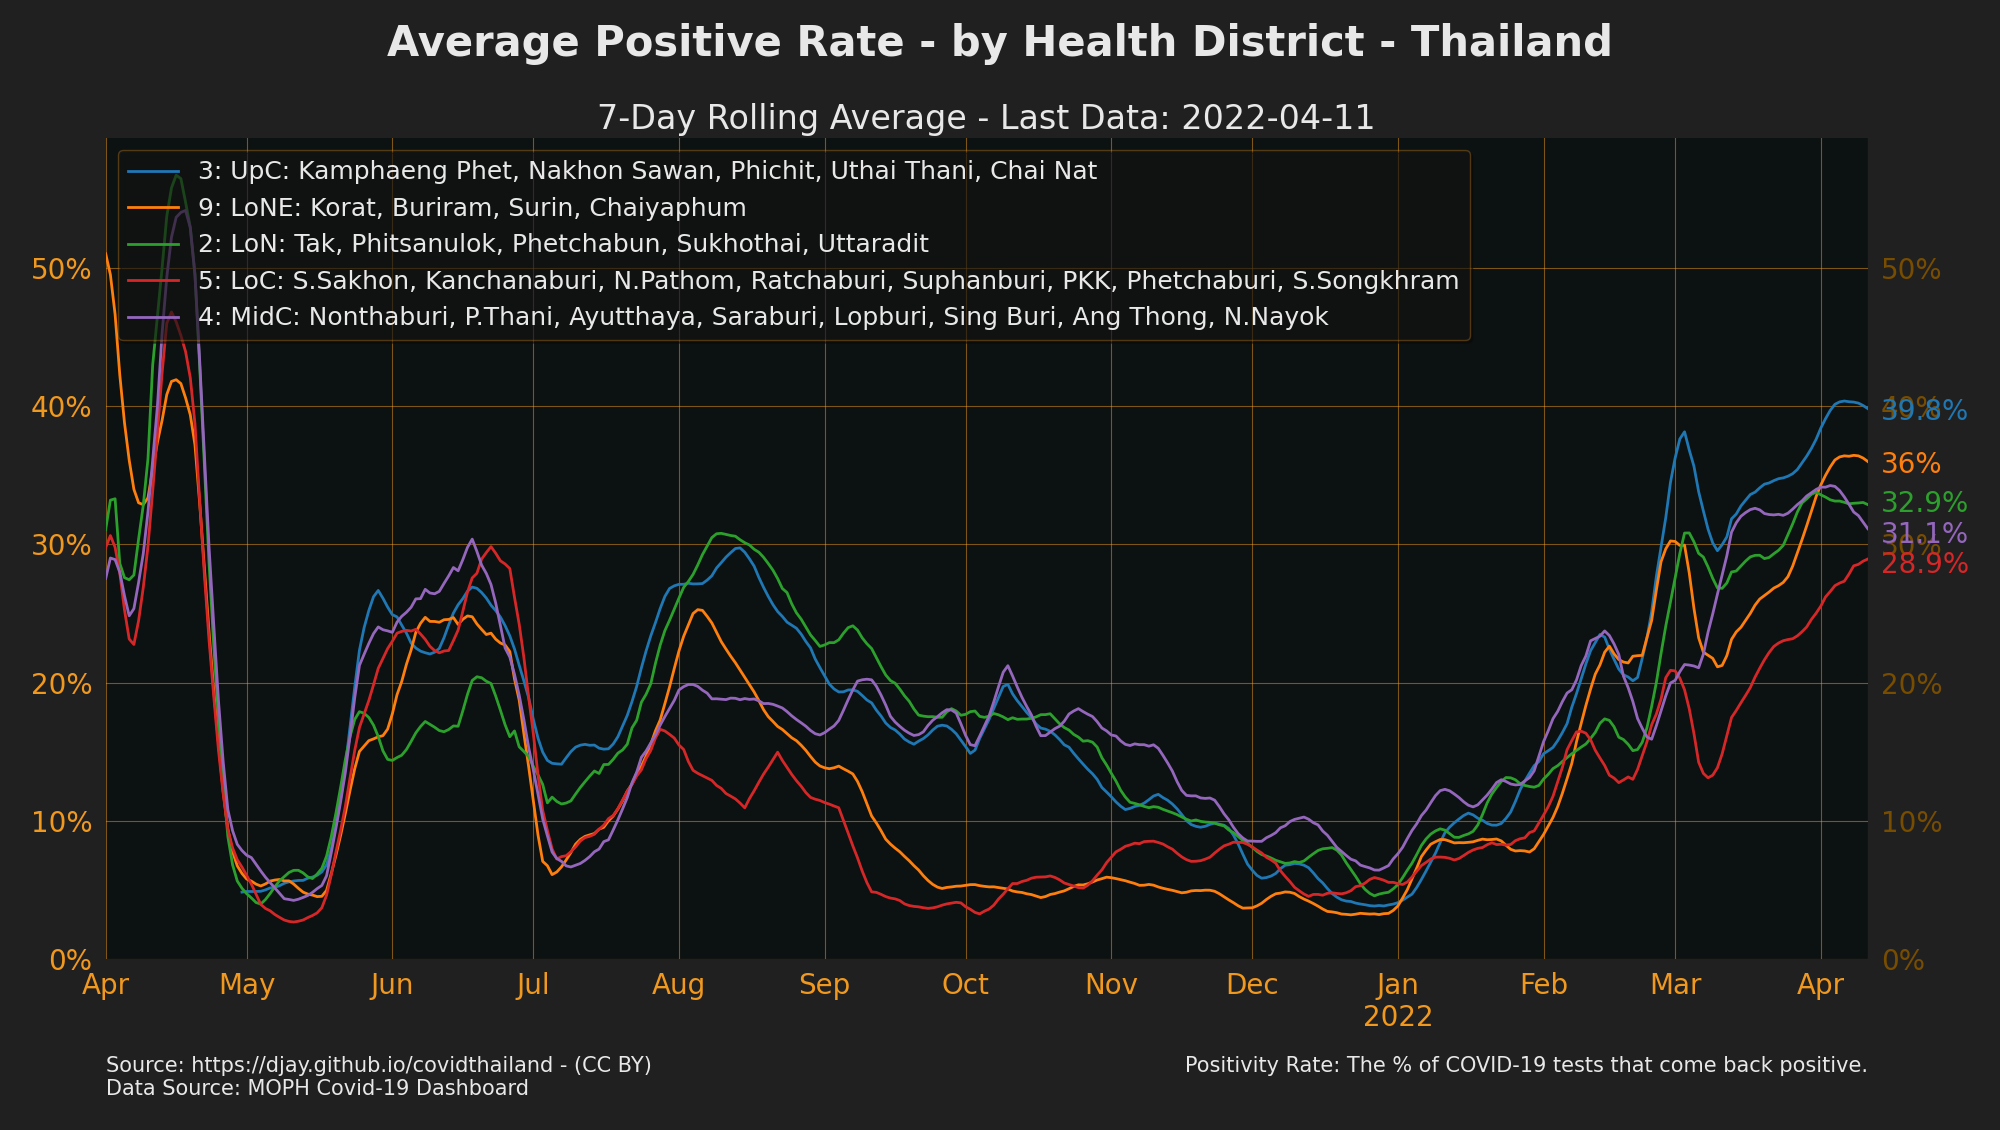 Health Districts with high Positive Rate (ex. some proactive tests)